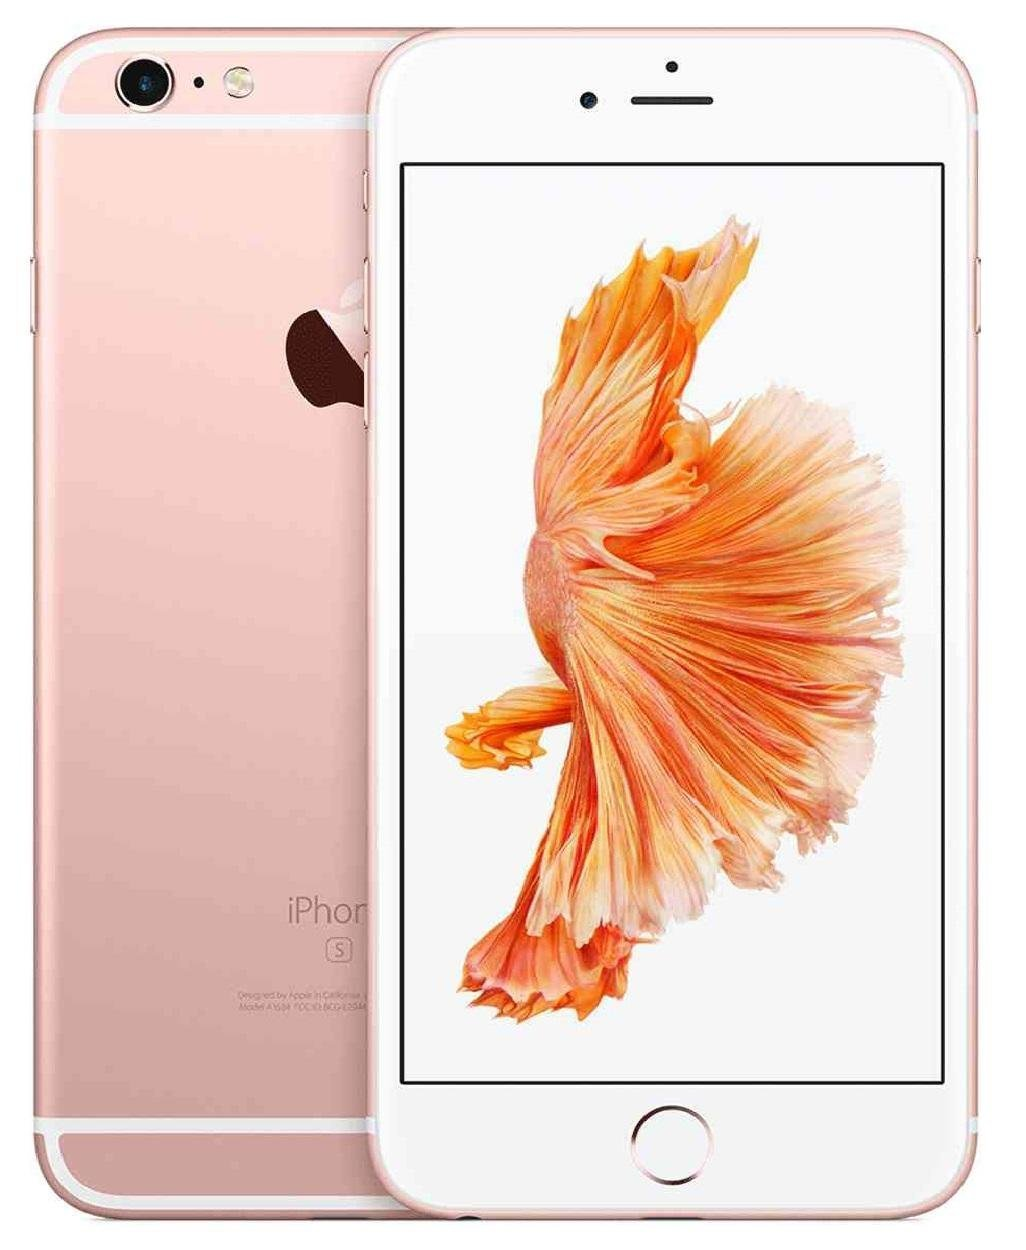 Apple iPhone 6S Plus, 64GB, Rose Gold - For AT&T (Renewed)